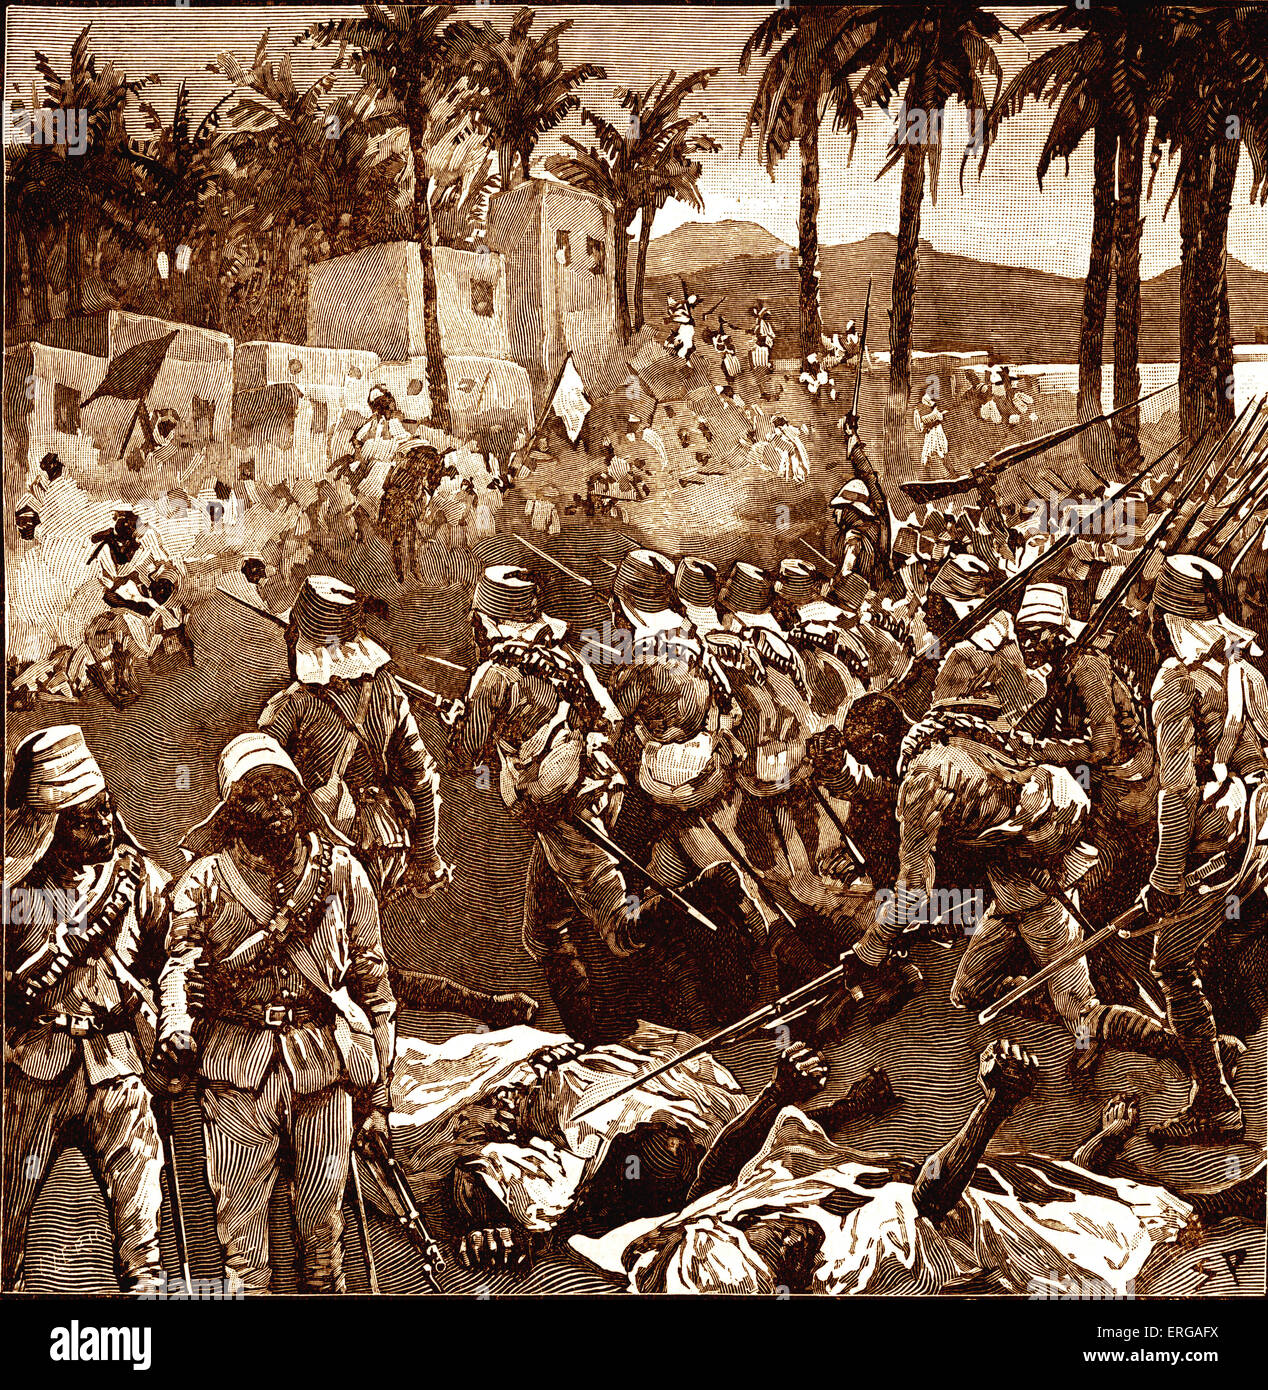 The Storming of Ferkah (or Firket), 1896. The Battle of Ferkeh occurred during the Mahdist War when an army of the Stock Photo